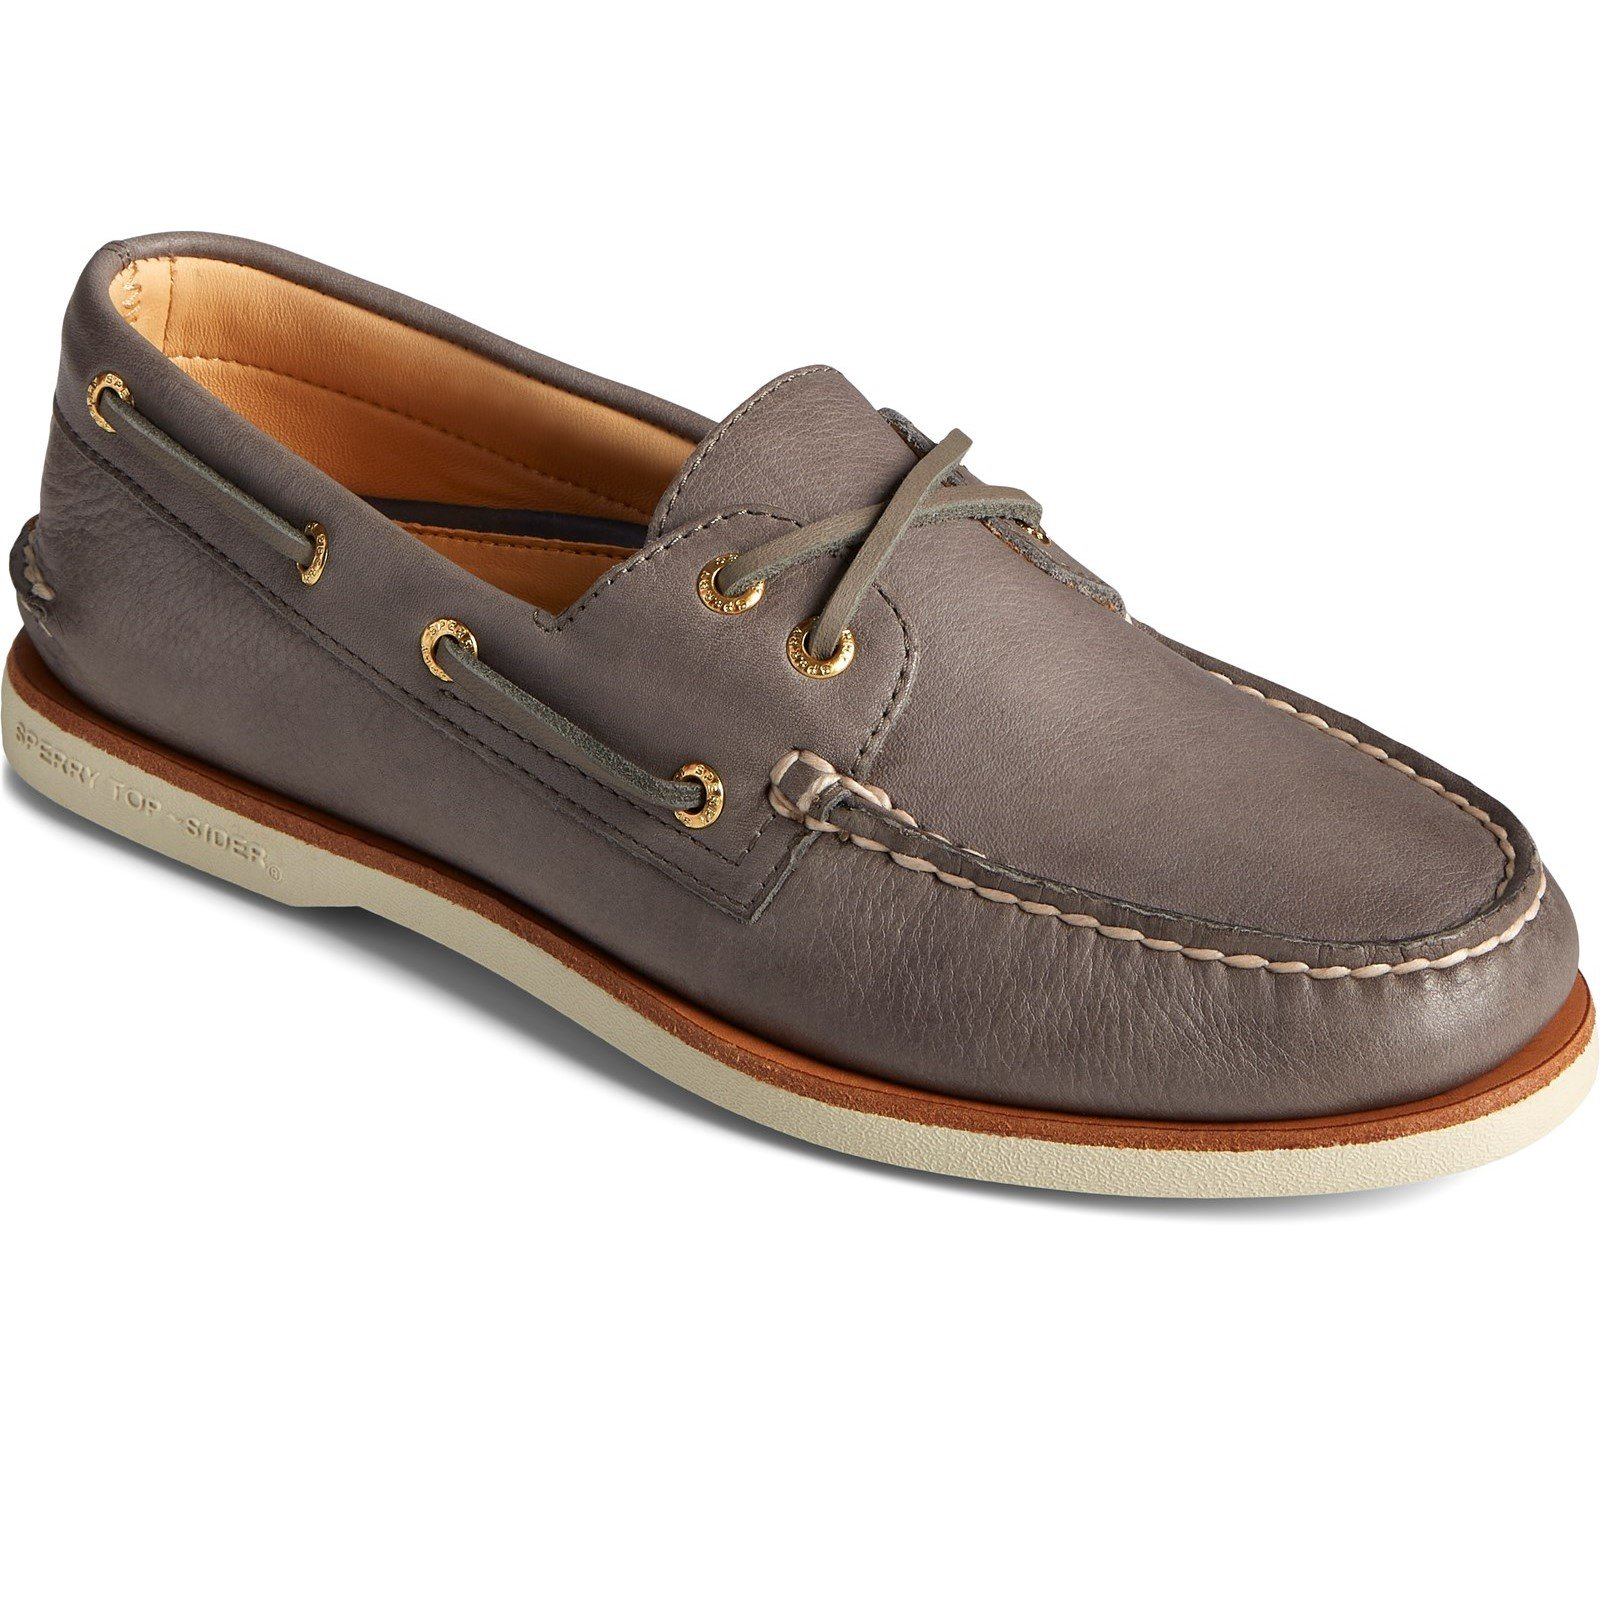 Sperry Men's A/O 2-Eye Boat Shoe Various Colours 32926 - Charcoal 8.5